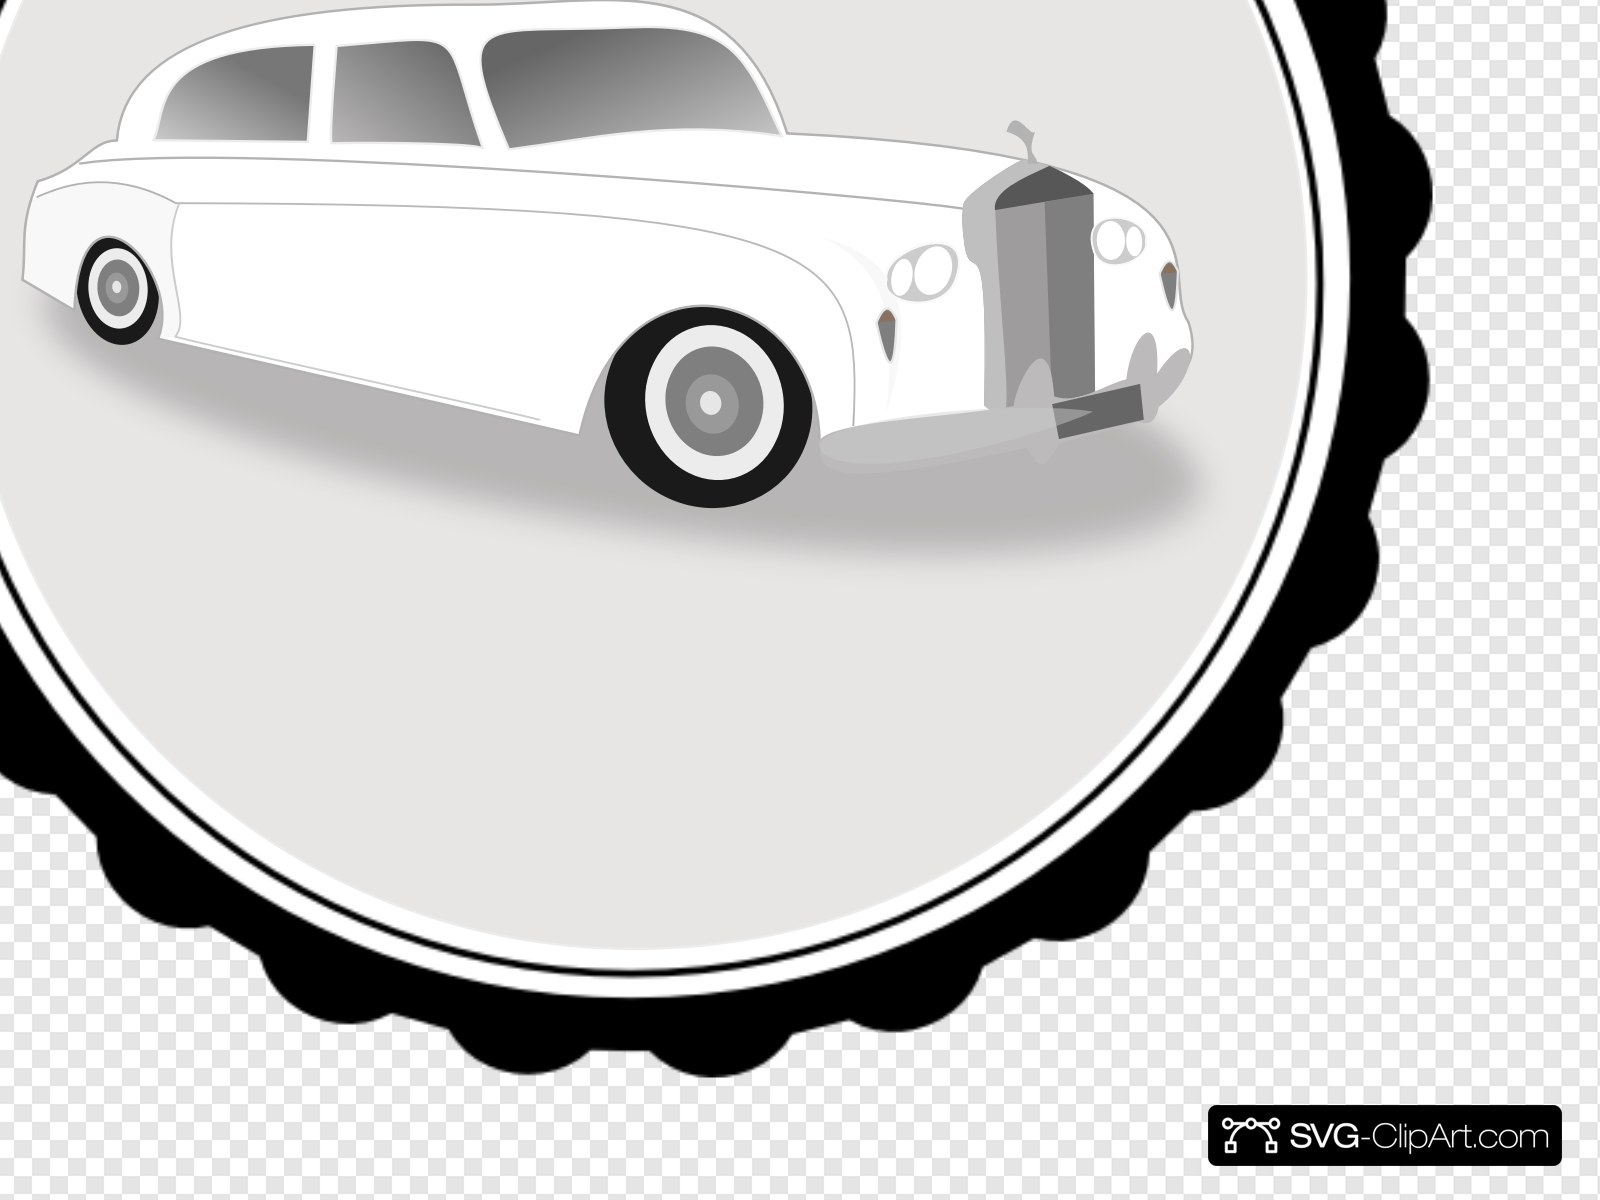 White Limo Clip art, Icon and SVG.